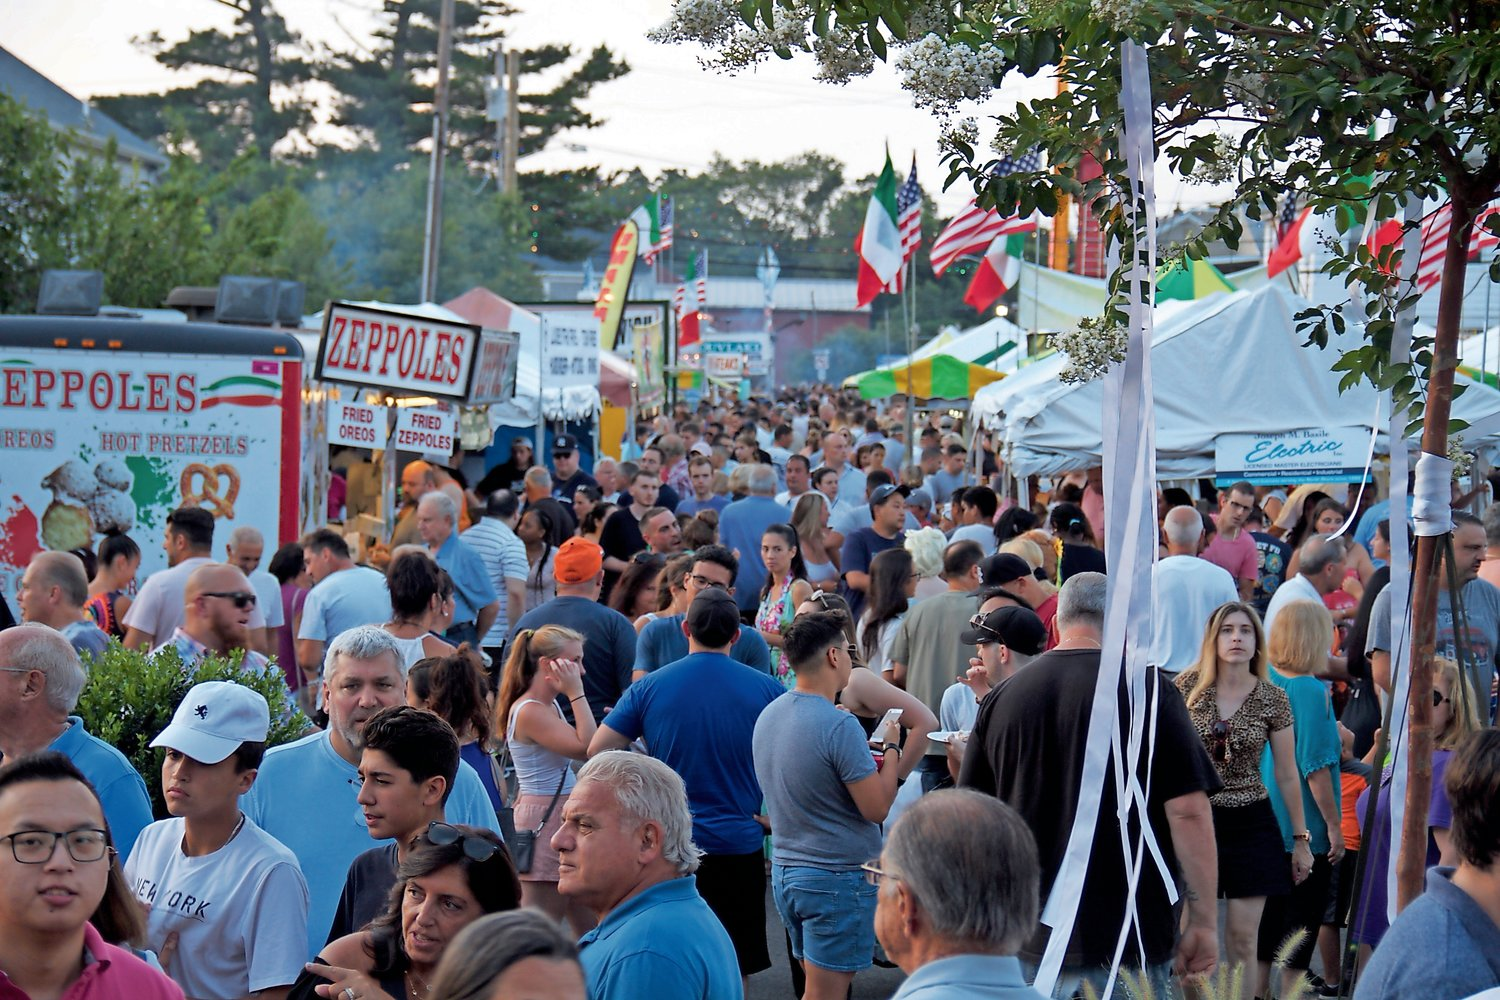 Thousands of people from across Long Island and beyond traveled to Glen Cove between July 31 and Aug. 4 for the annual Feast of St. Rocco.